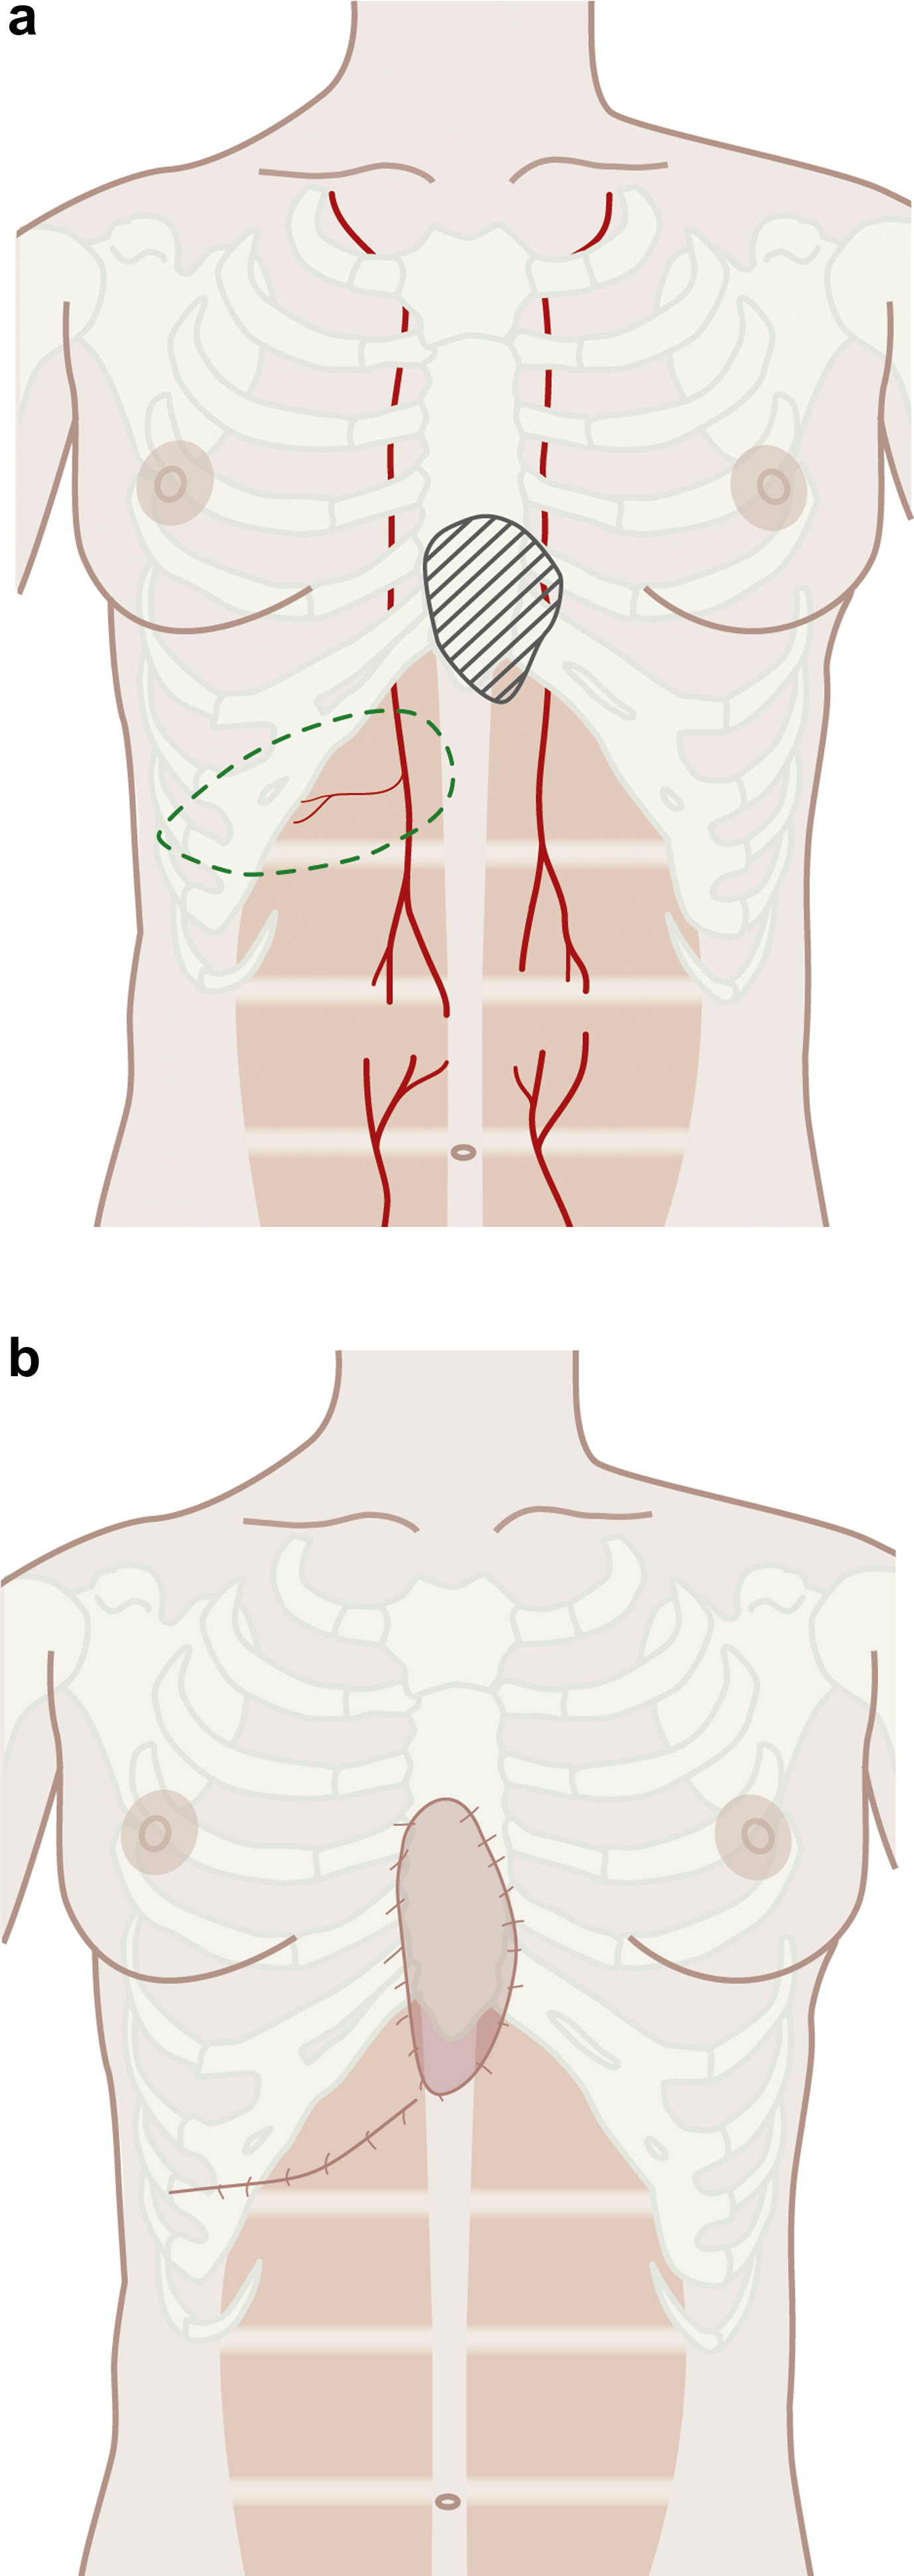 Perforasomes of the upper abdomen: An anatomical study - Journal of ...